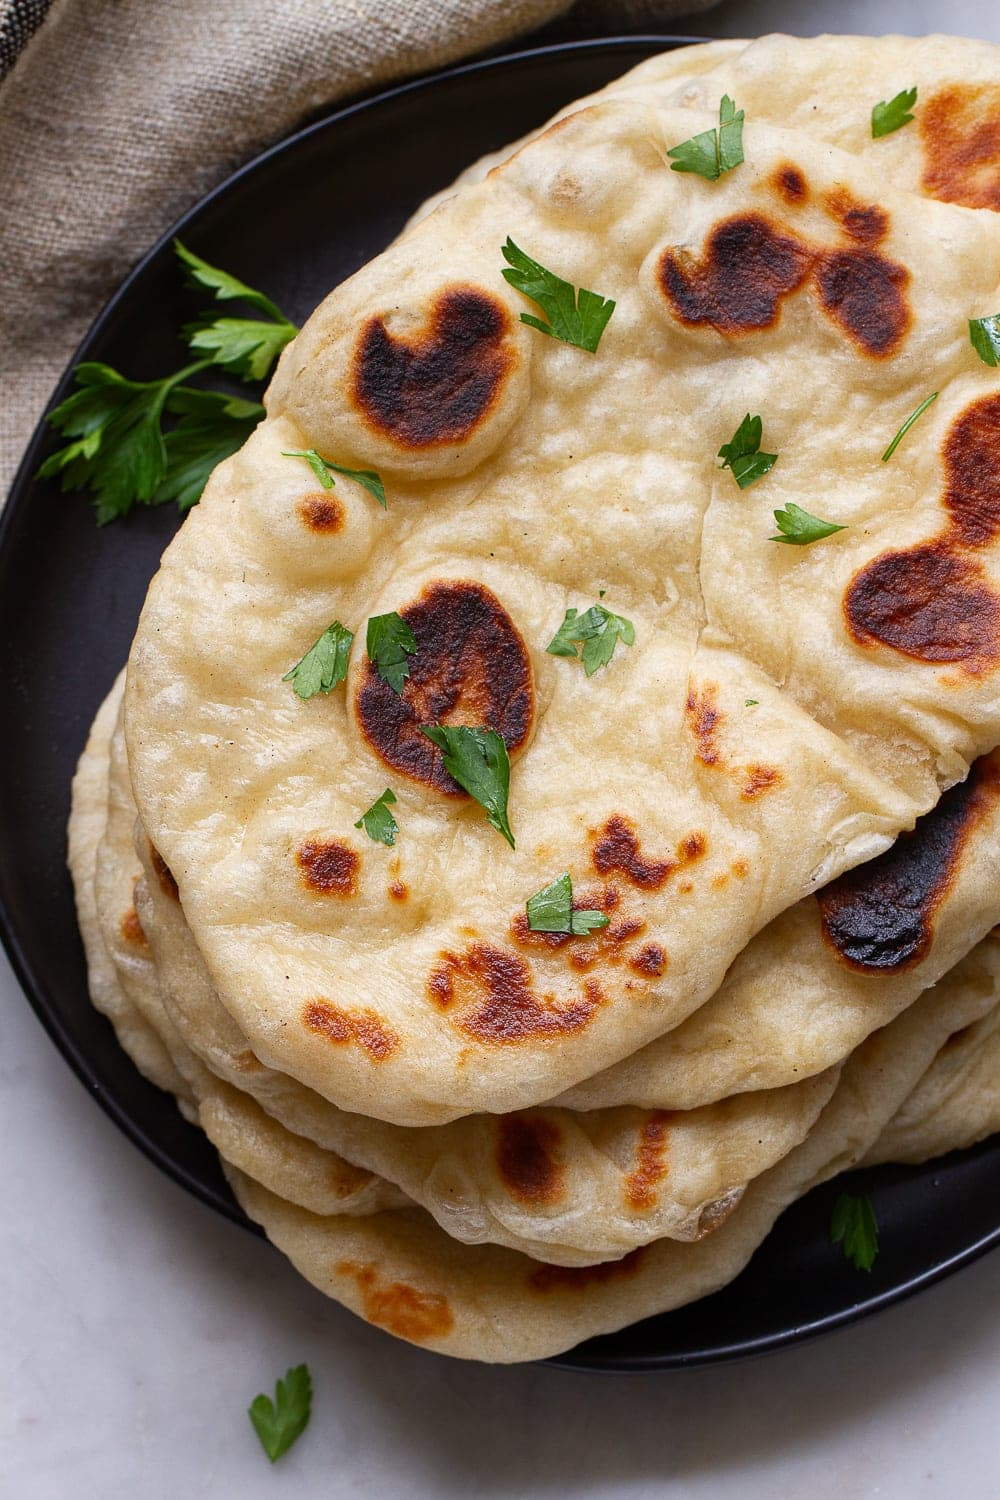 top down view of freshly made vegan naan bread stacked on a black plate.